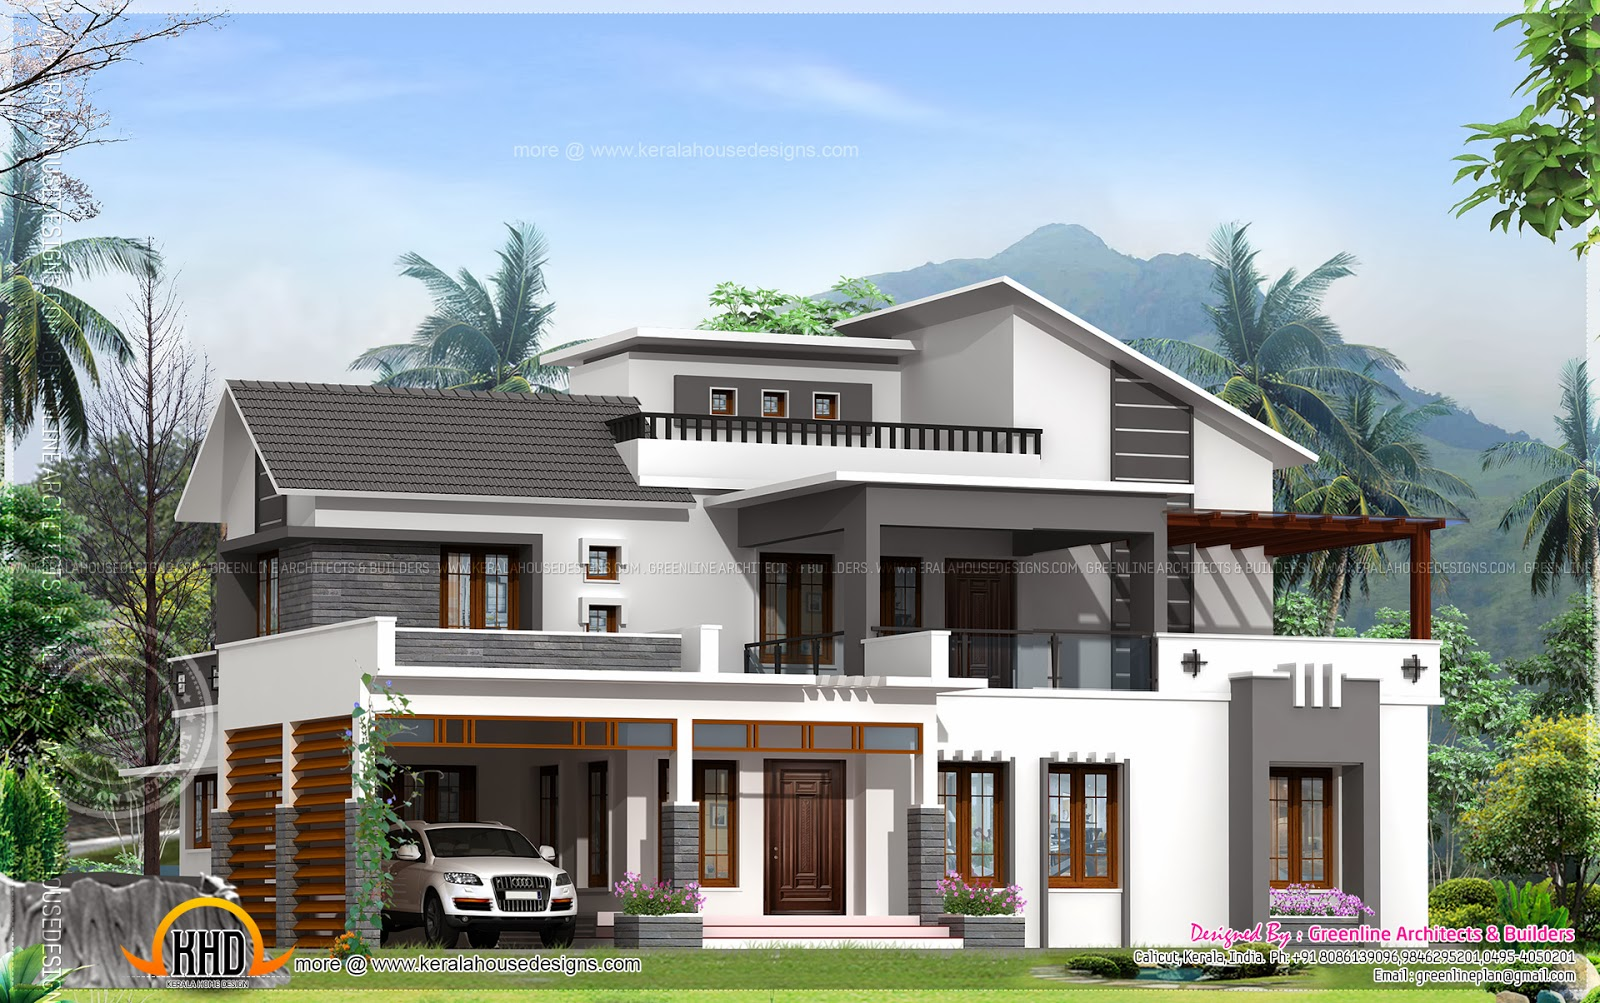 Modern home elevation design kerala home design and for Elevation of kerala homes